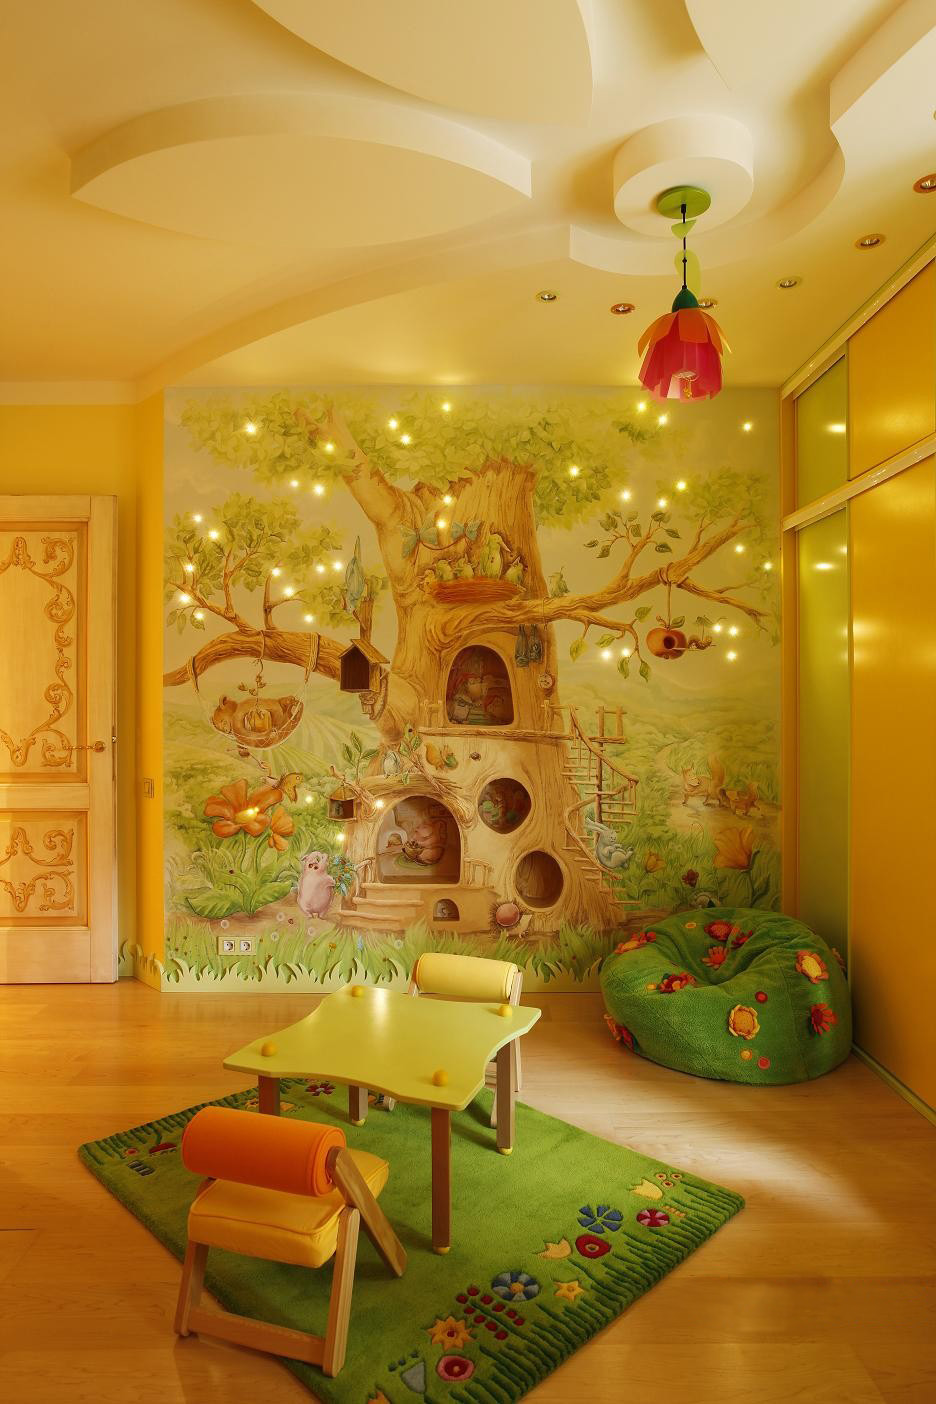 stunning-tree-wallpapers-for-childrens-room-decoration-with-floral-lighting-in-ceiling-as-well-small-table-and-chair-on-green-rug-as-well-wooden-laminate-floor +25 Marvelous Kids' Rooms Ceiling Designs Ideas